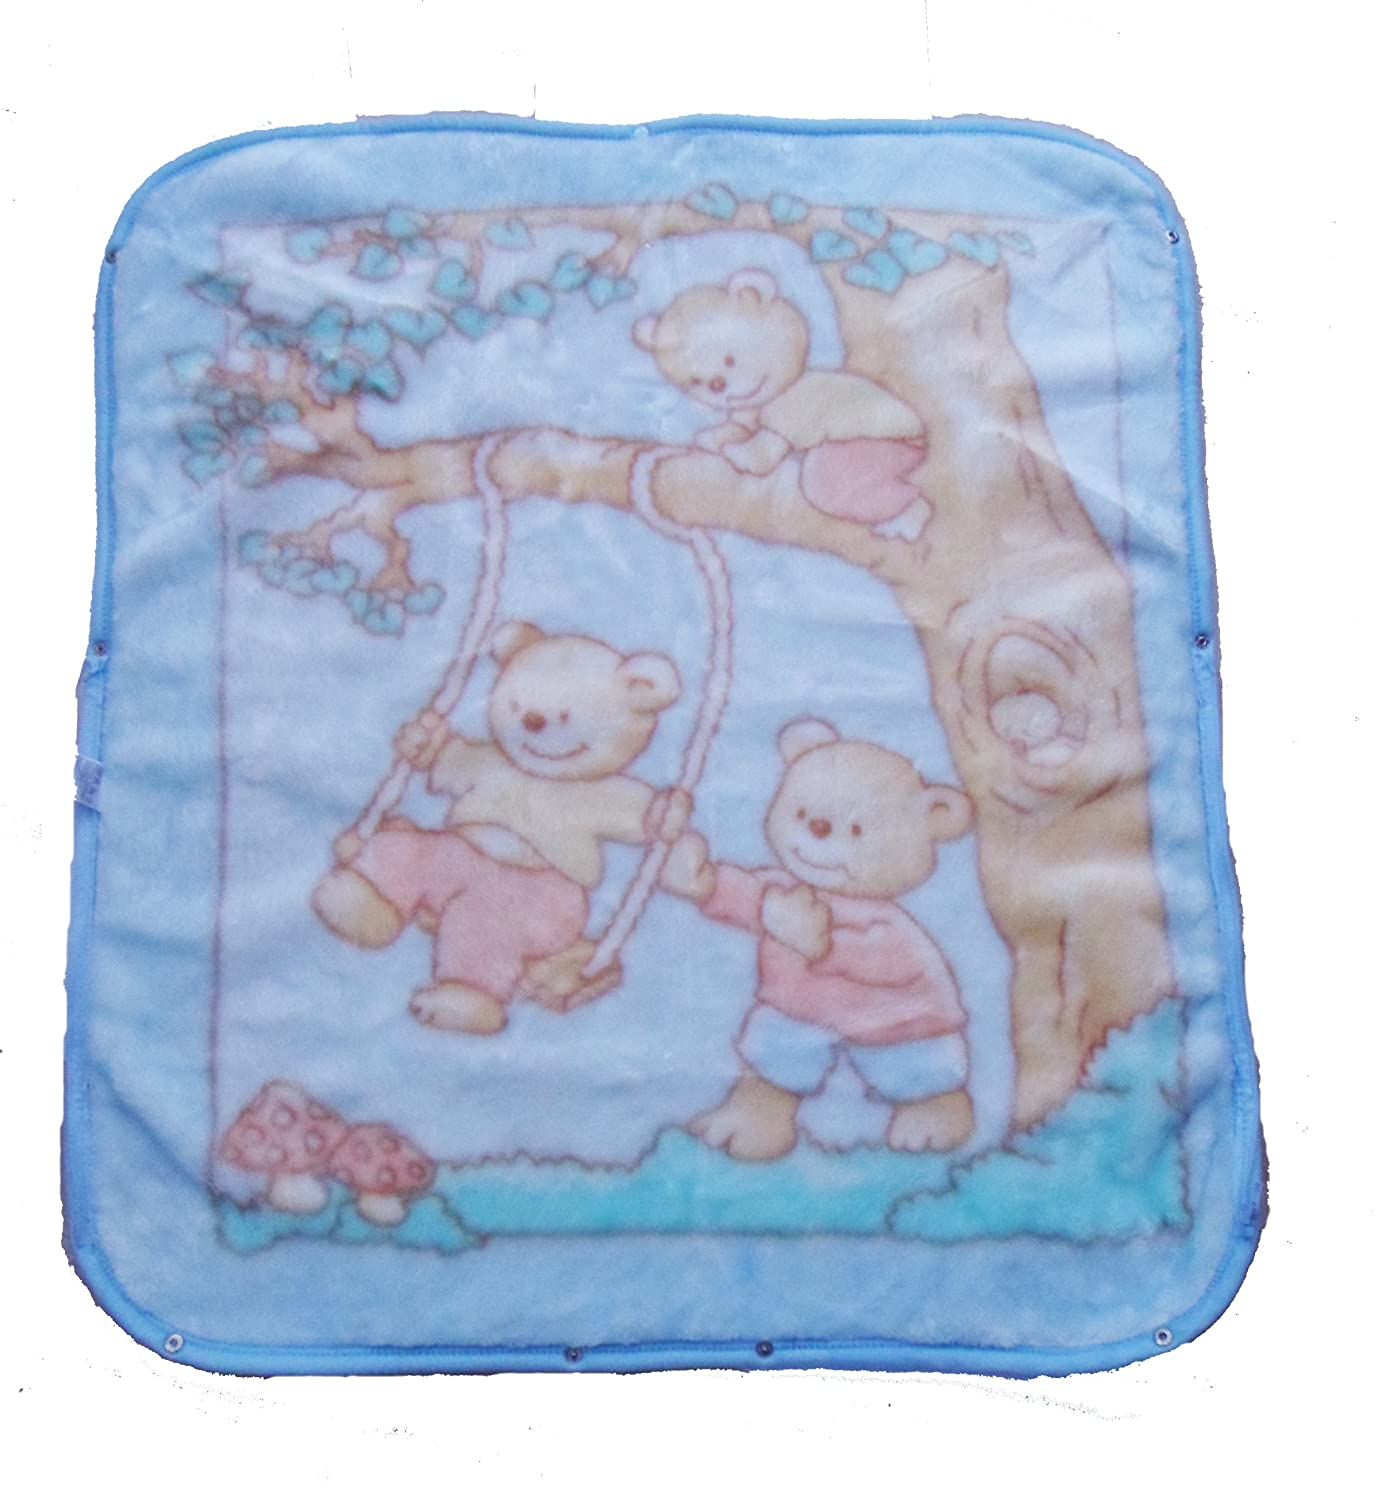 Colour Baby Blue With Printed Design Baby Wrap With Hood Luxuriously Soft Swaddle Blanket Plush Wrap